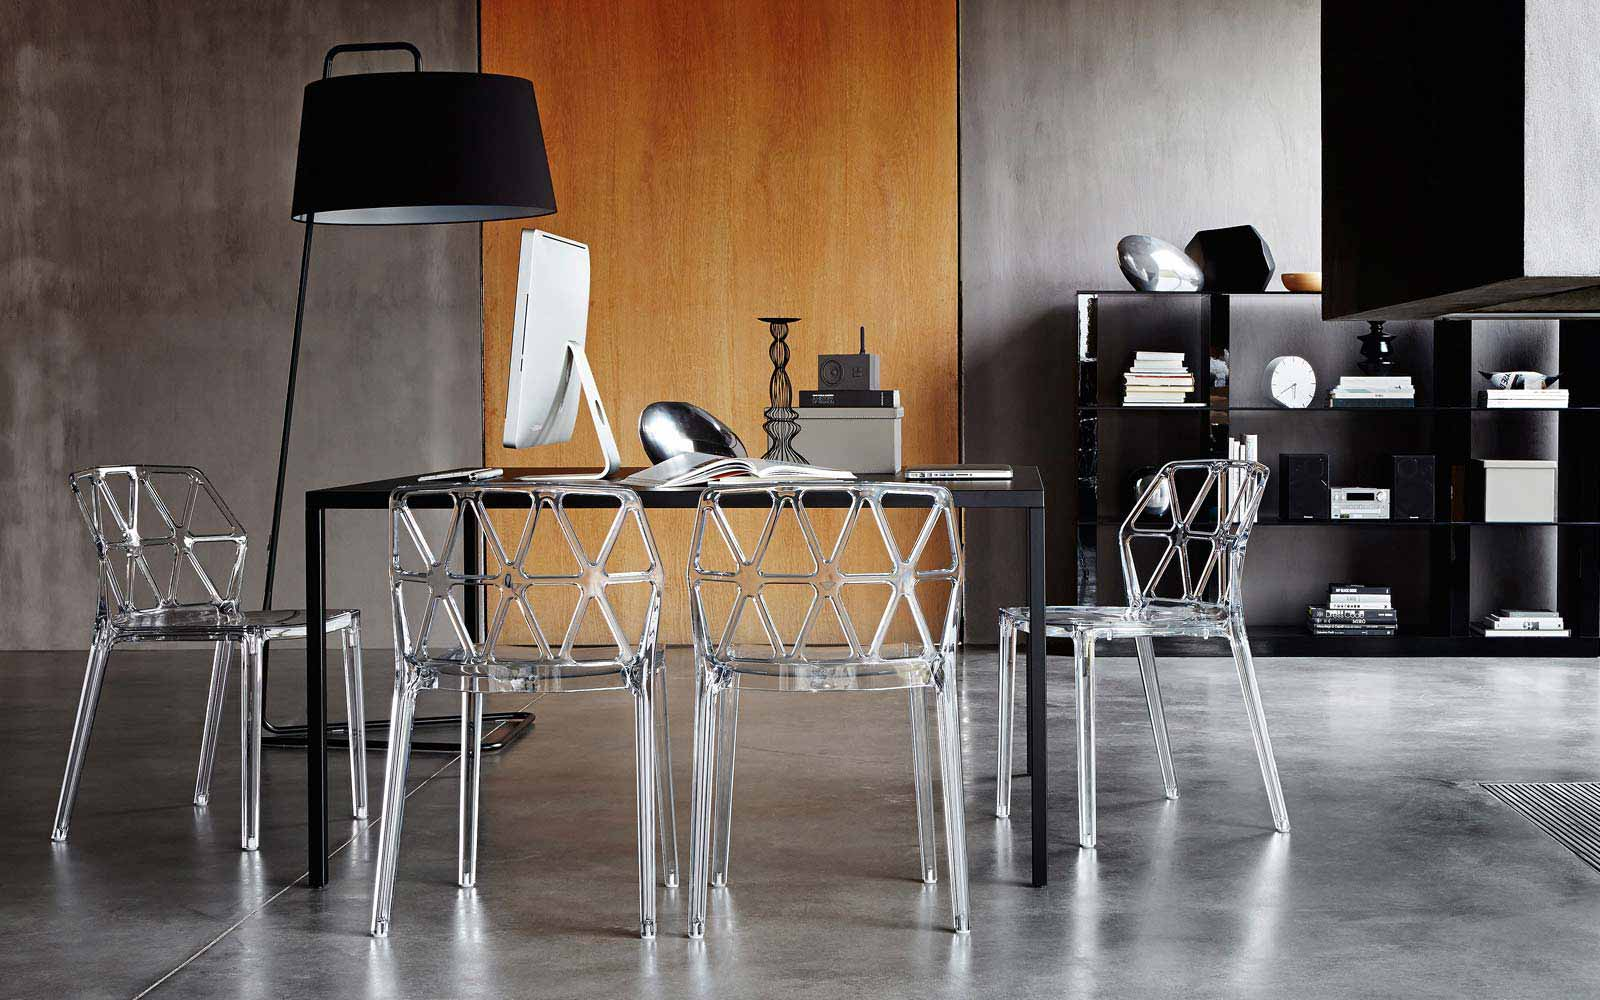 Catalogo calligaris 2013 3 design mon amour for Catalogo calligaris